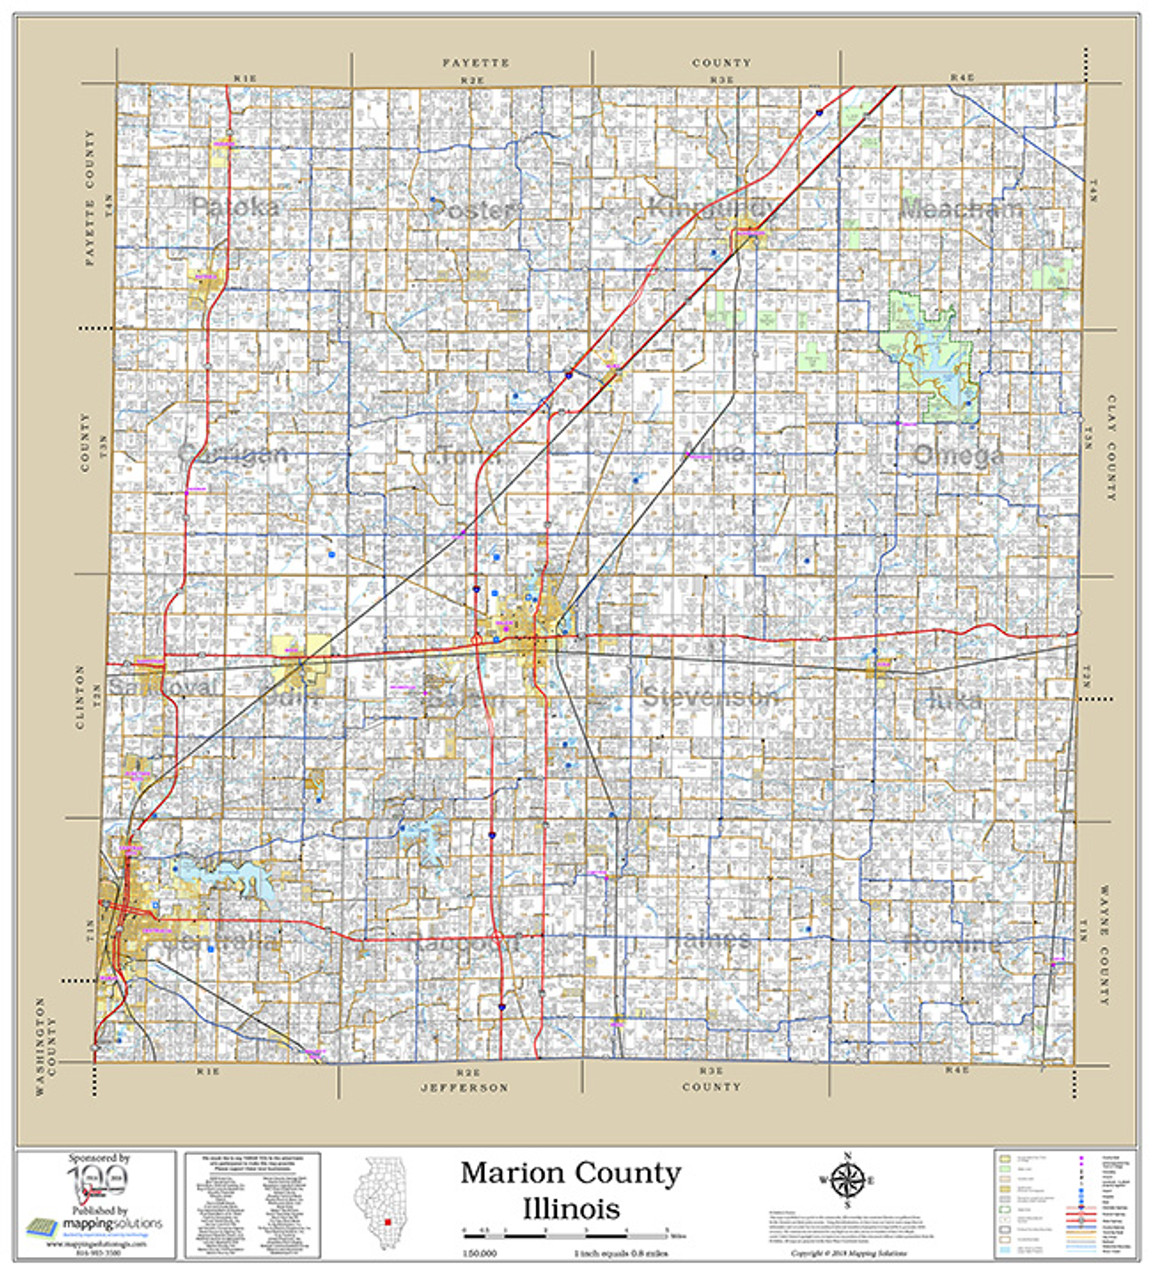 Marion County Illinois 2018 Wall Map on map of marion ohio, mapquest marion il, marion city il, map of marion indiana, map of central falls ri,